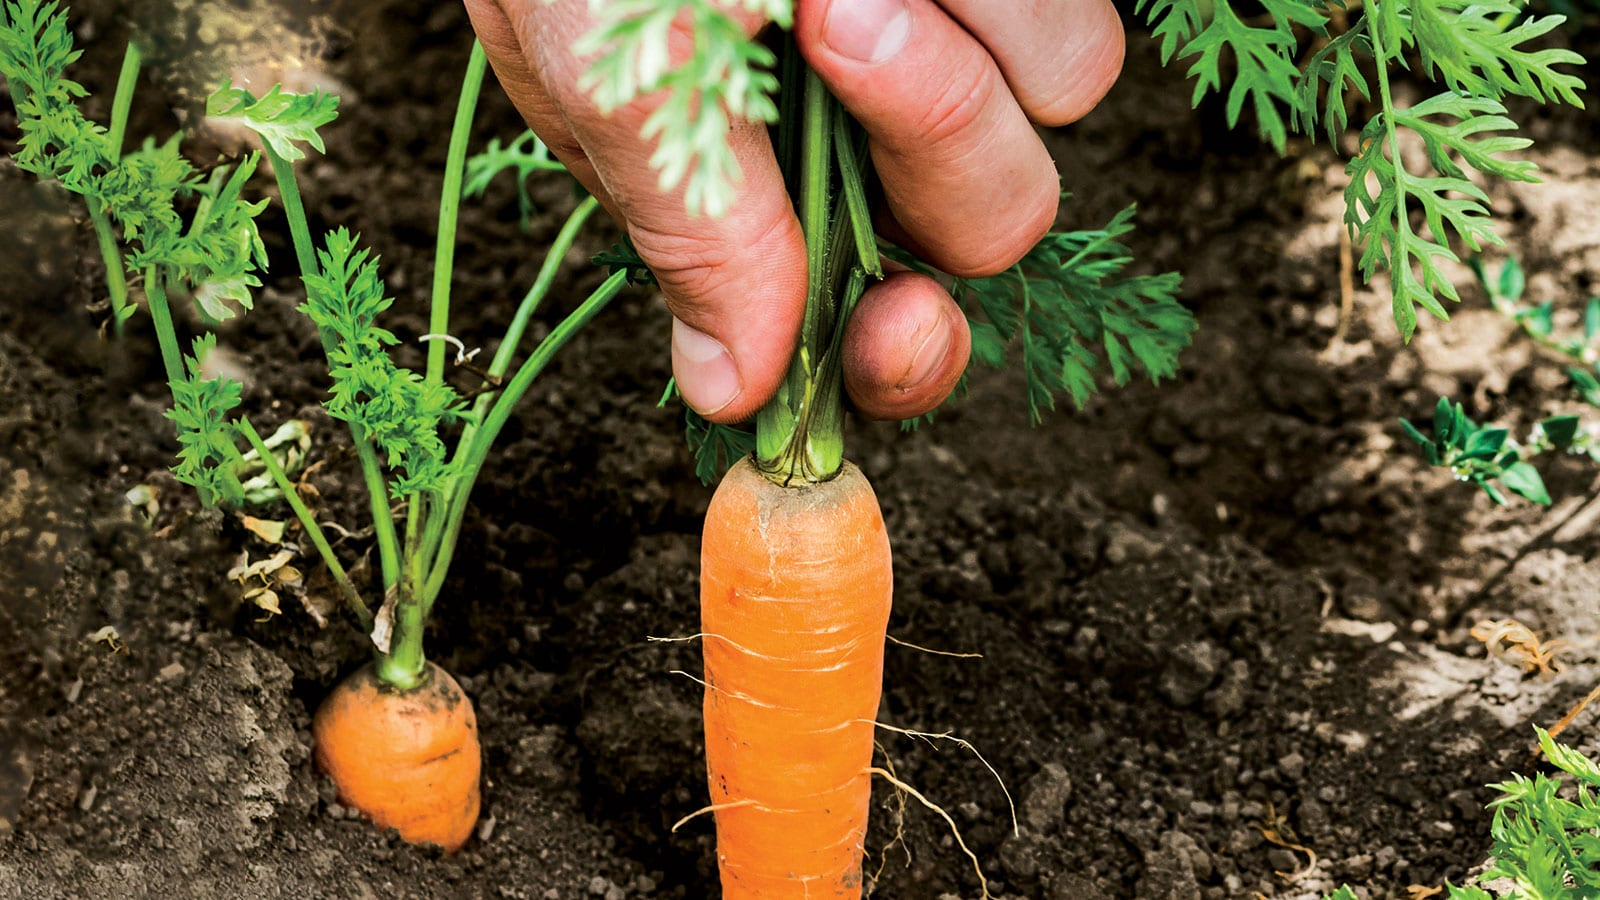 Fresh grown carrot being pulled up from the dirt.